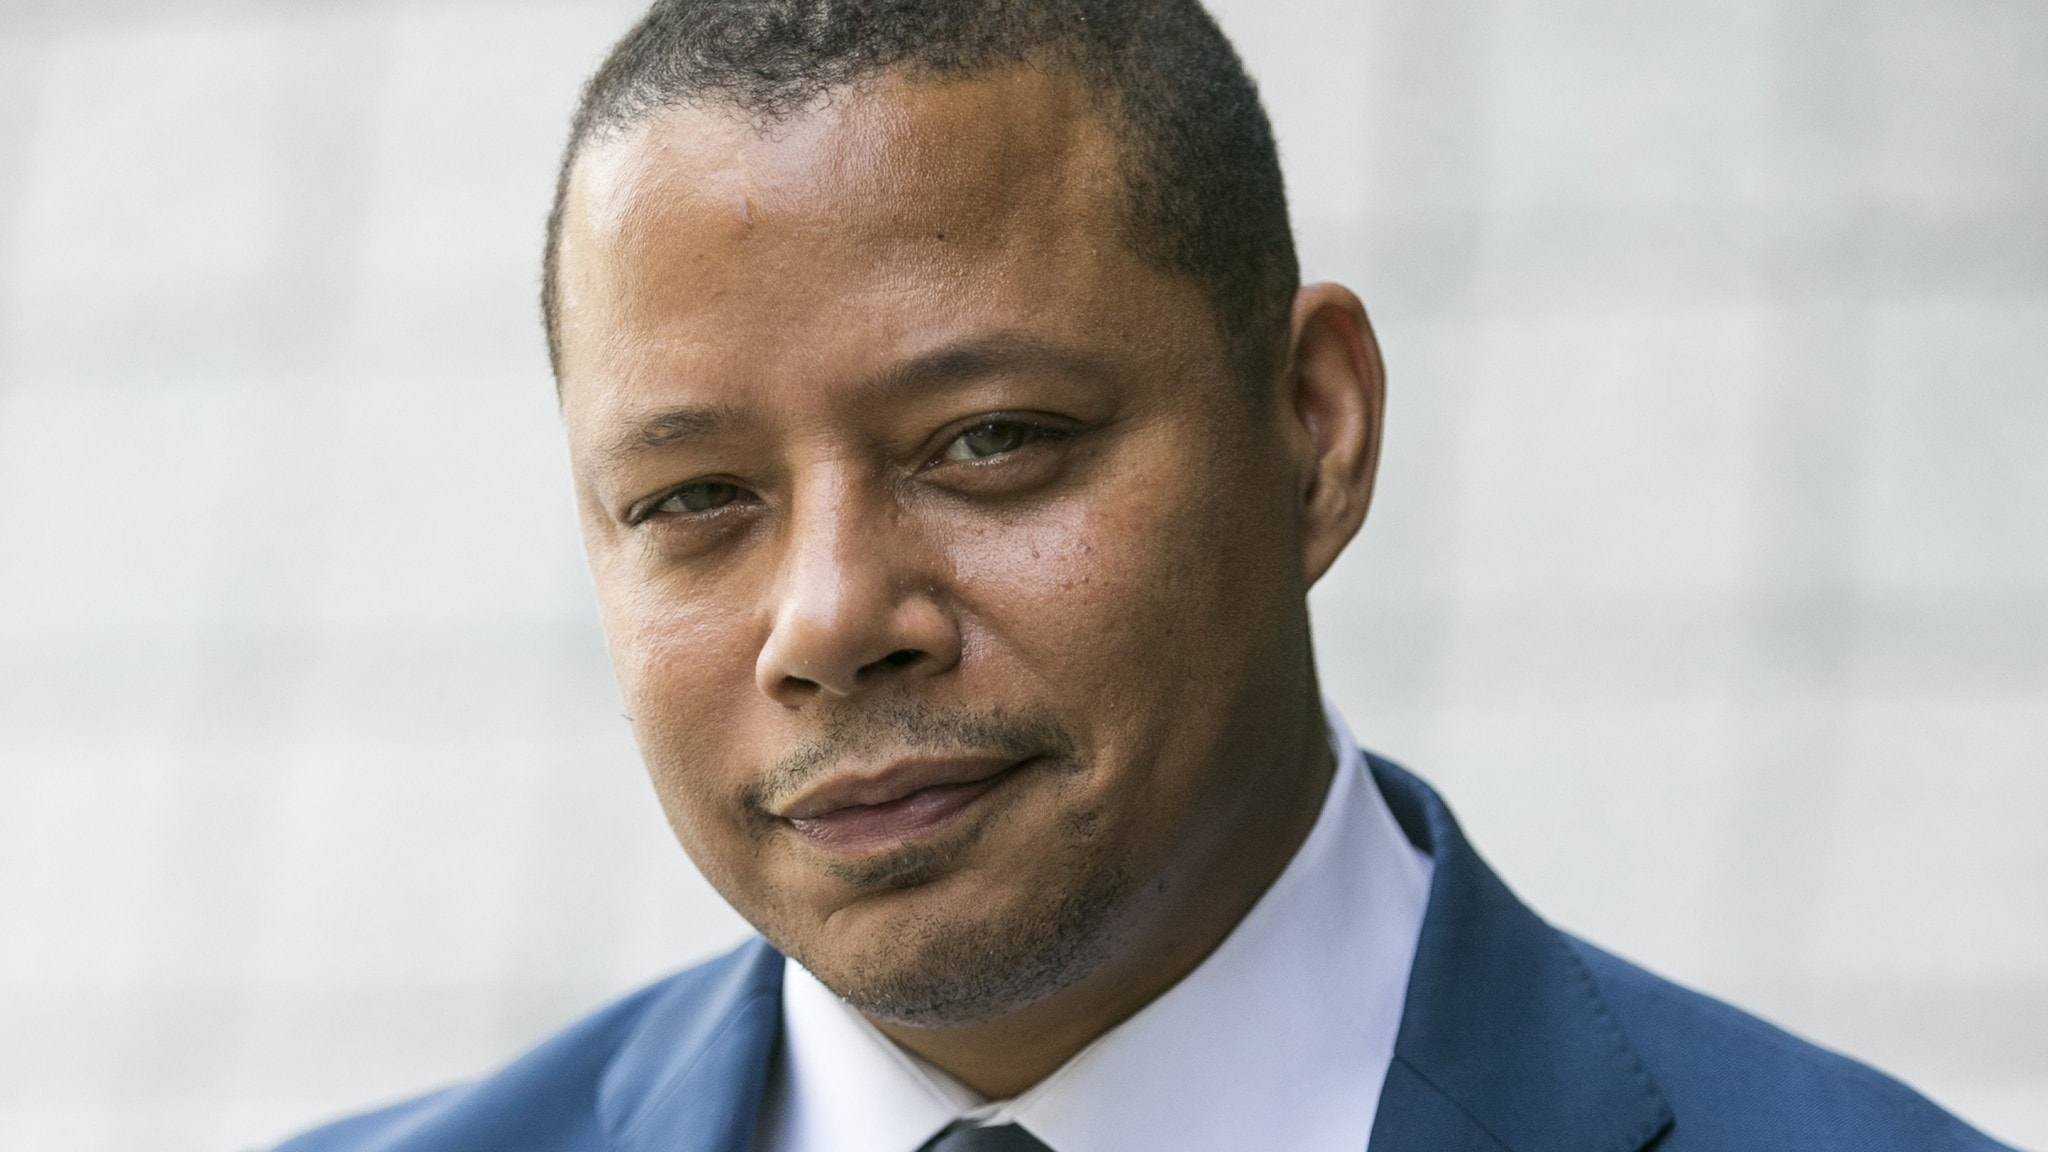 Terrence Howard HQ wallpapers